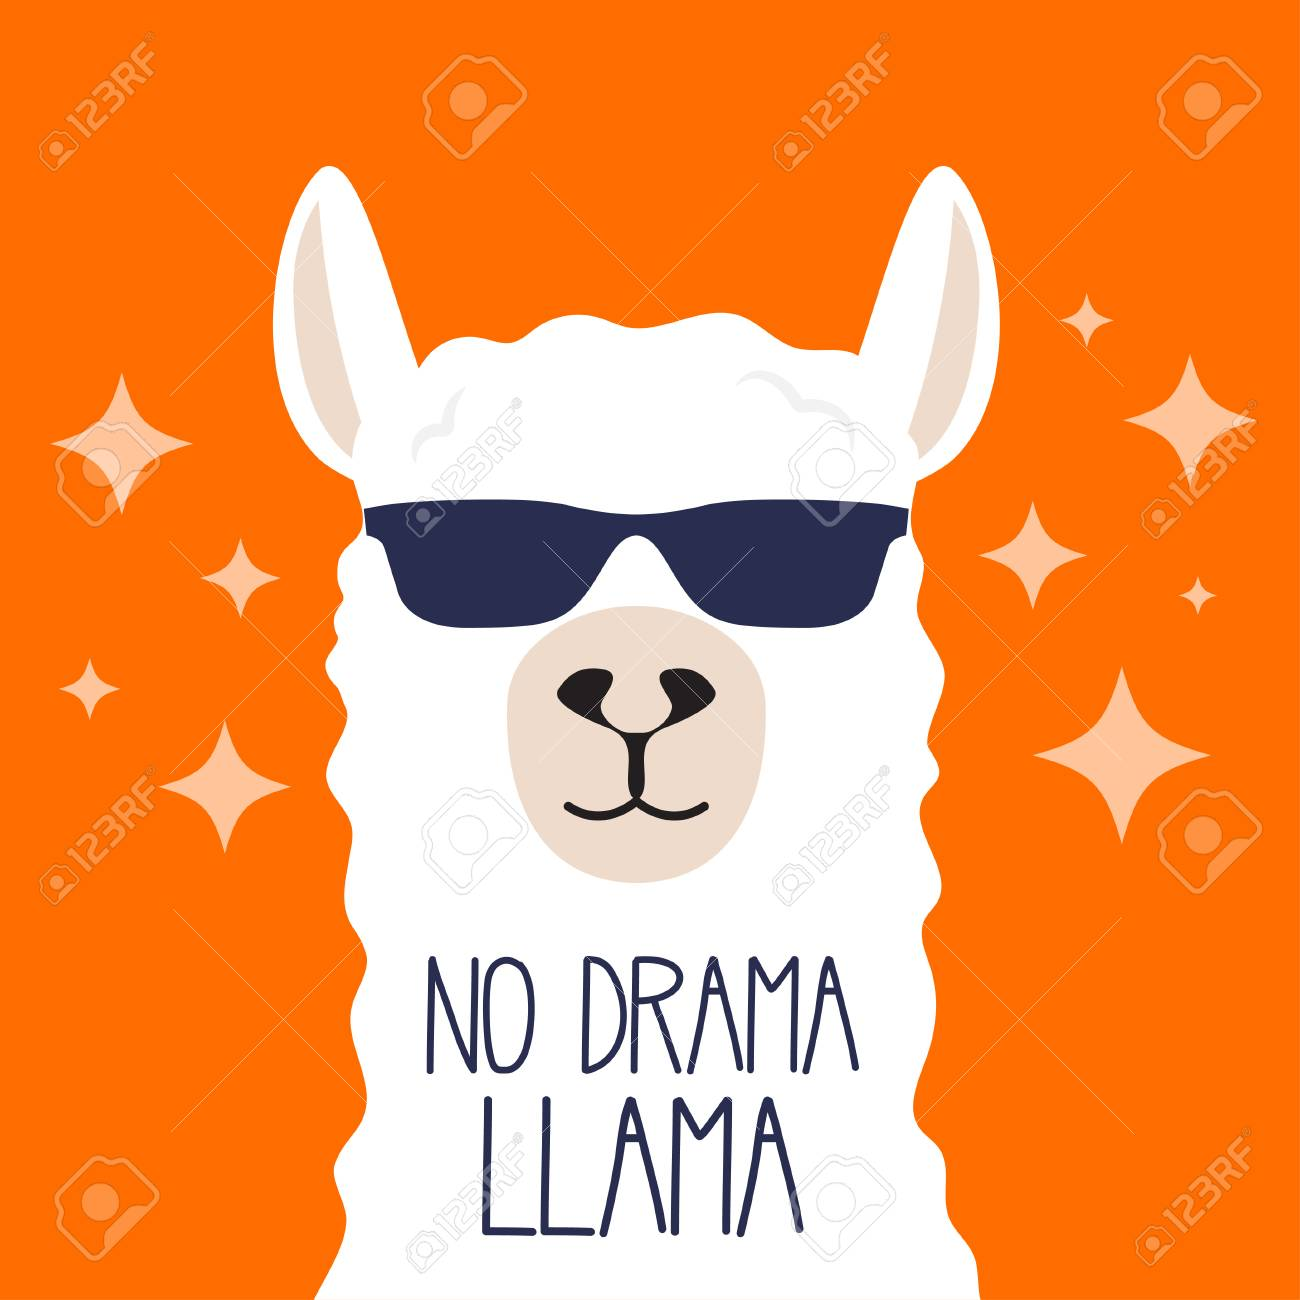 White llama with sunglasses and lettering. No drama llama. Motivational poster for prints. Vector illustration. - 103016018